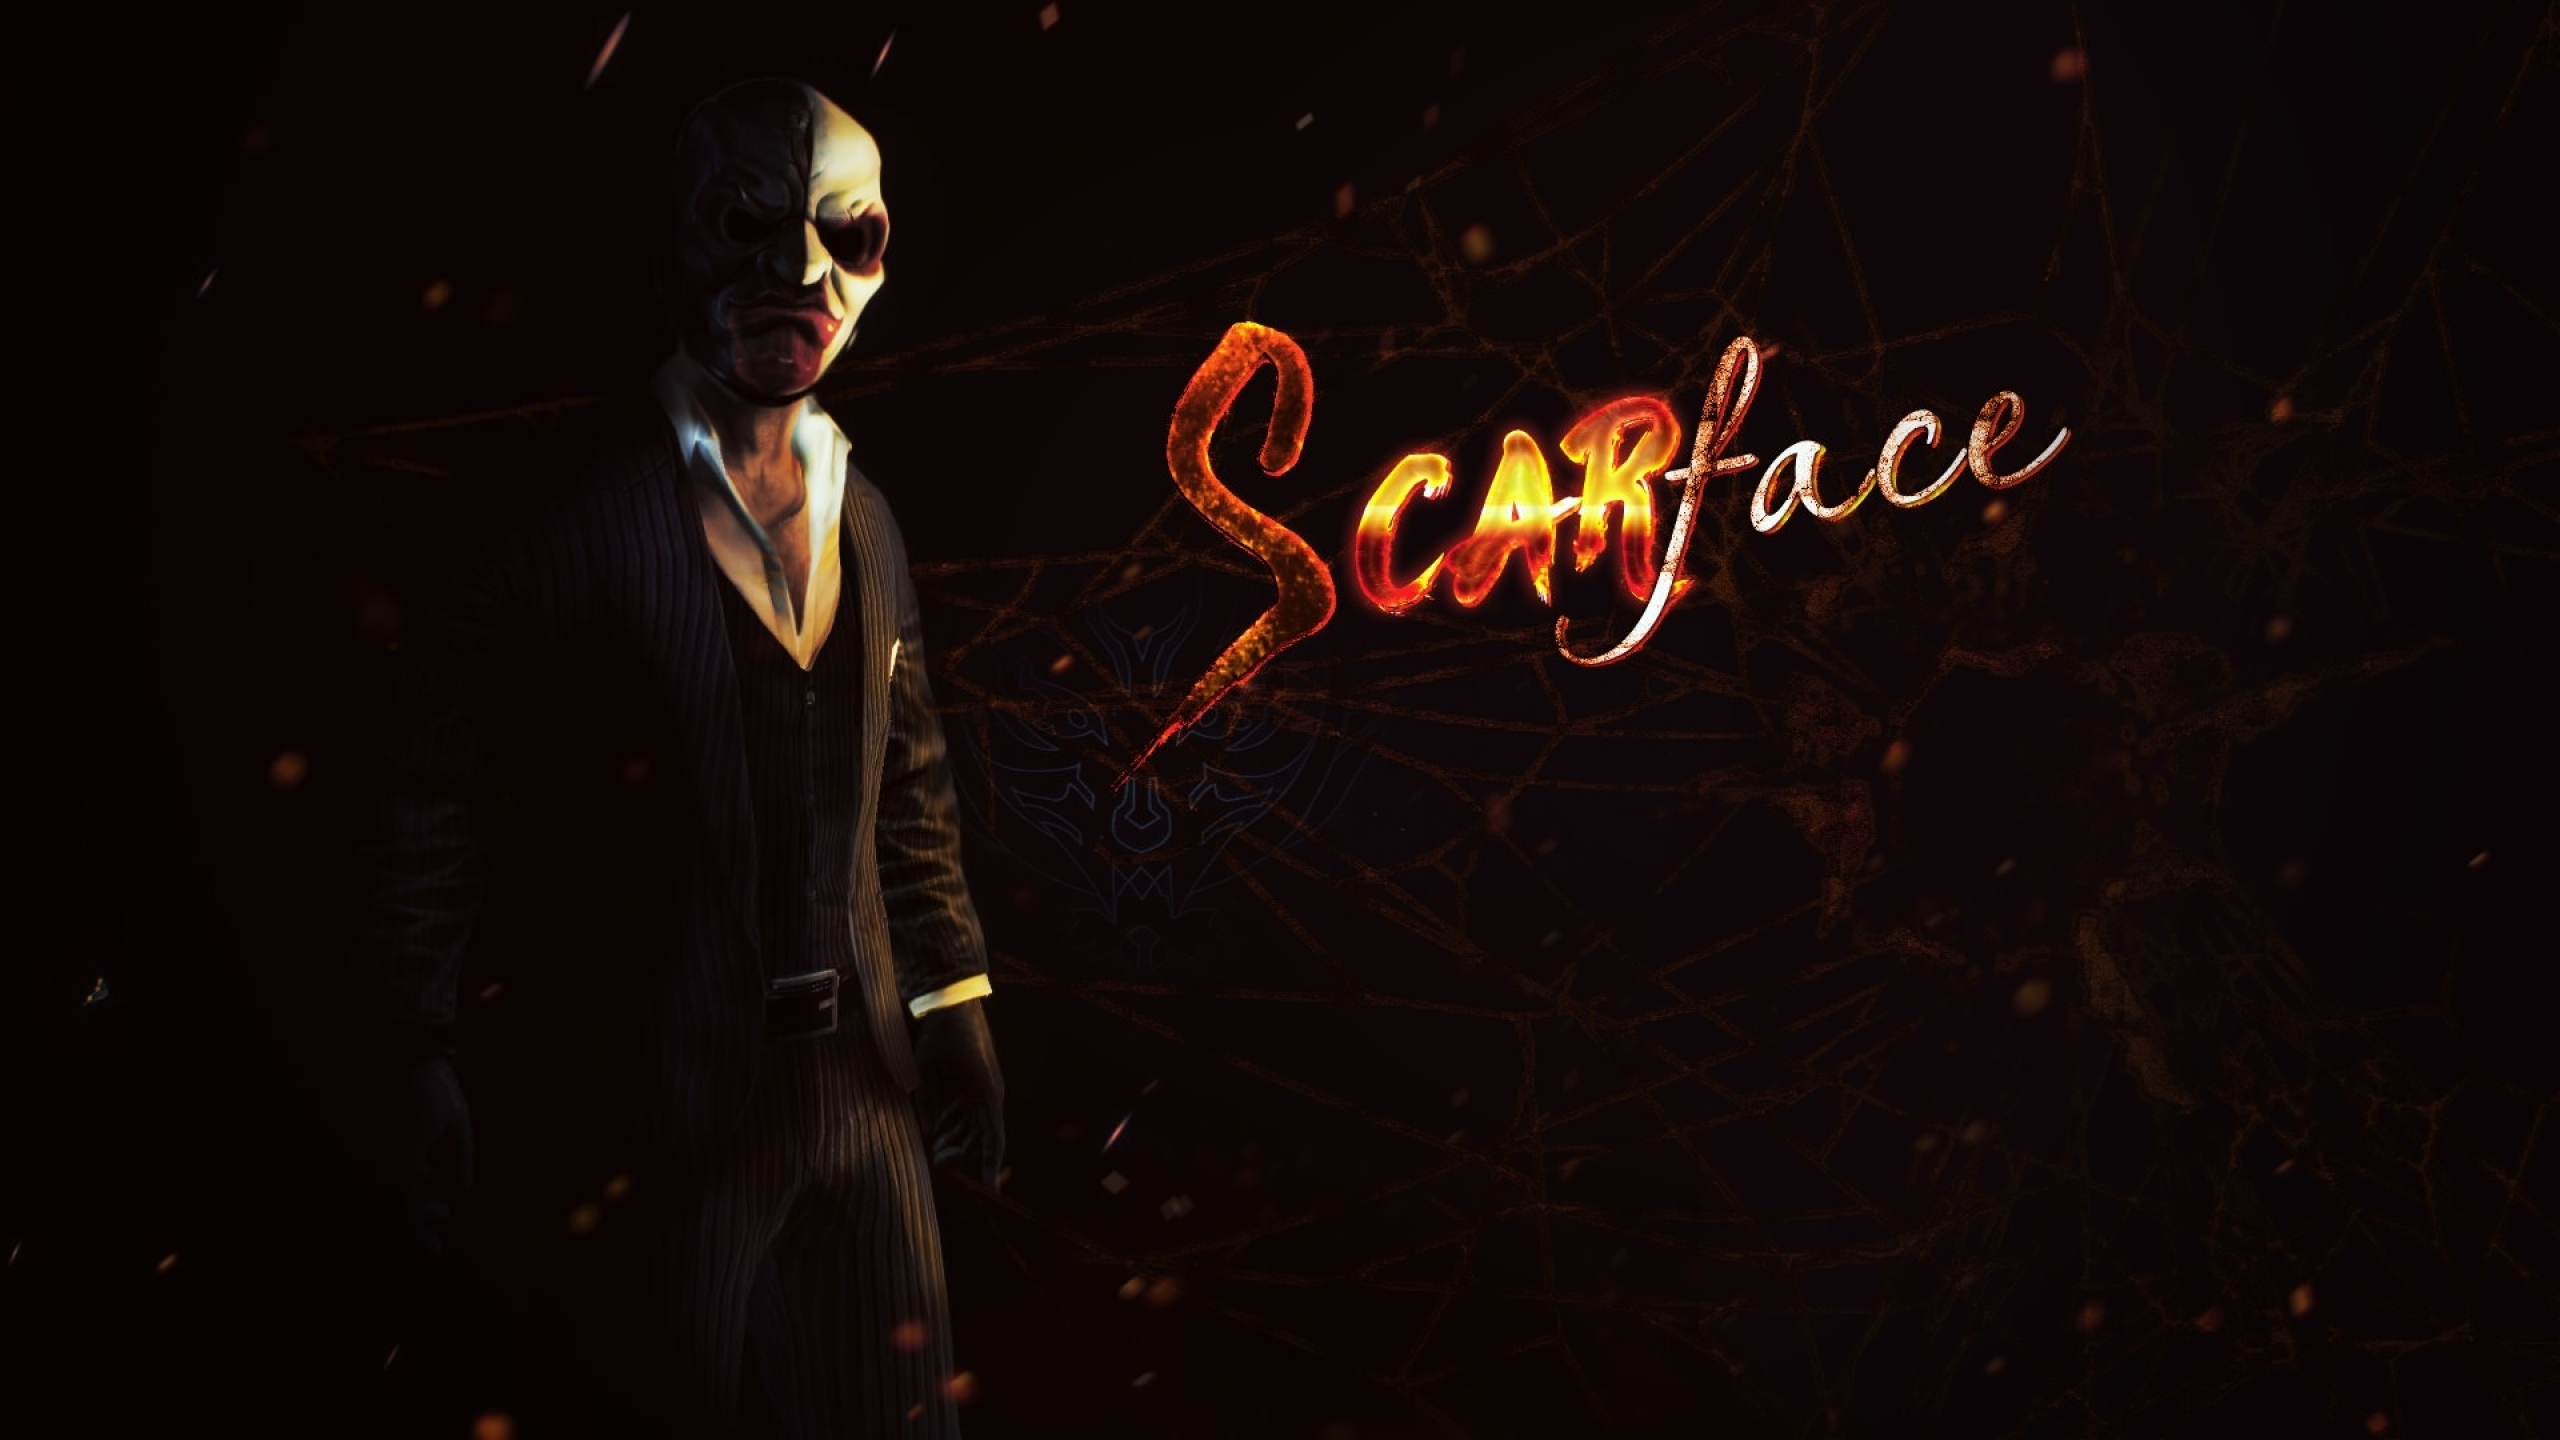 2560x1440 Payday 2 Scarface Game 1440p Resolution Wallpaper Hd